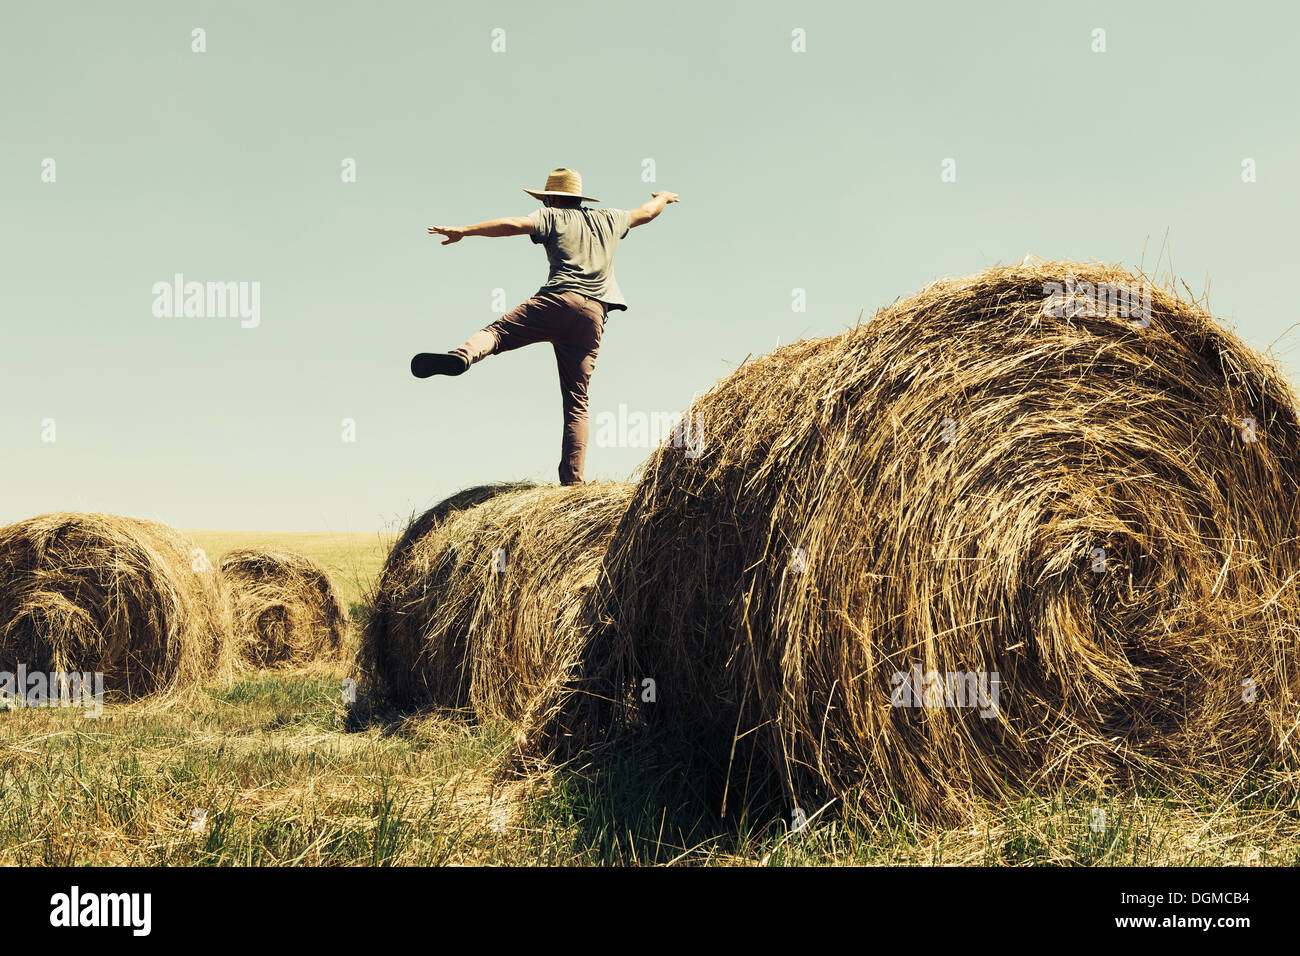 Back view of a man balancing on one leg on top of a hay bale. Stock Foto